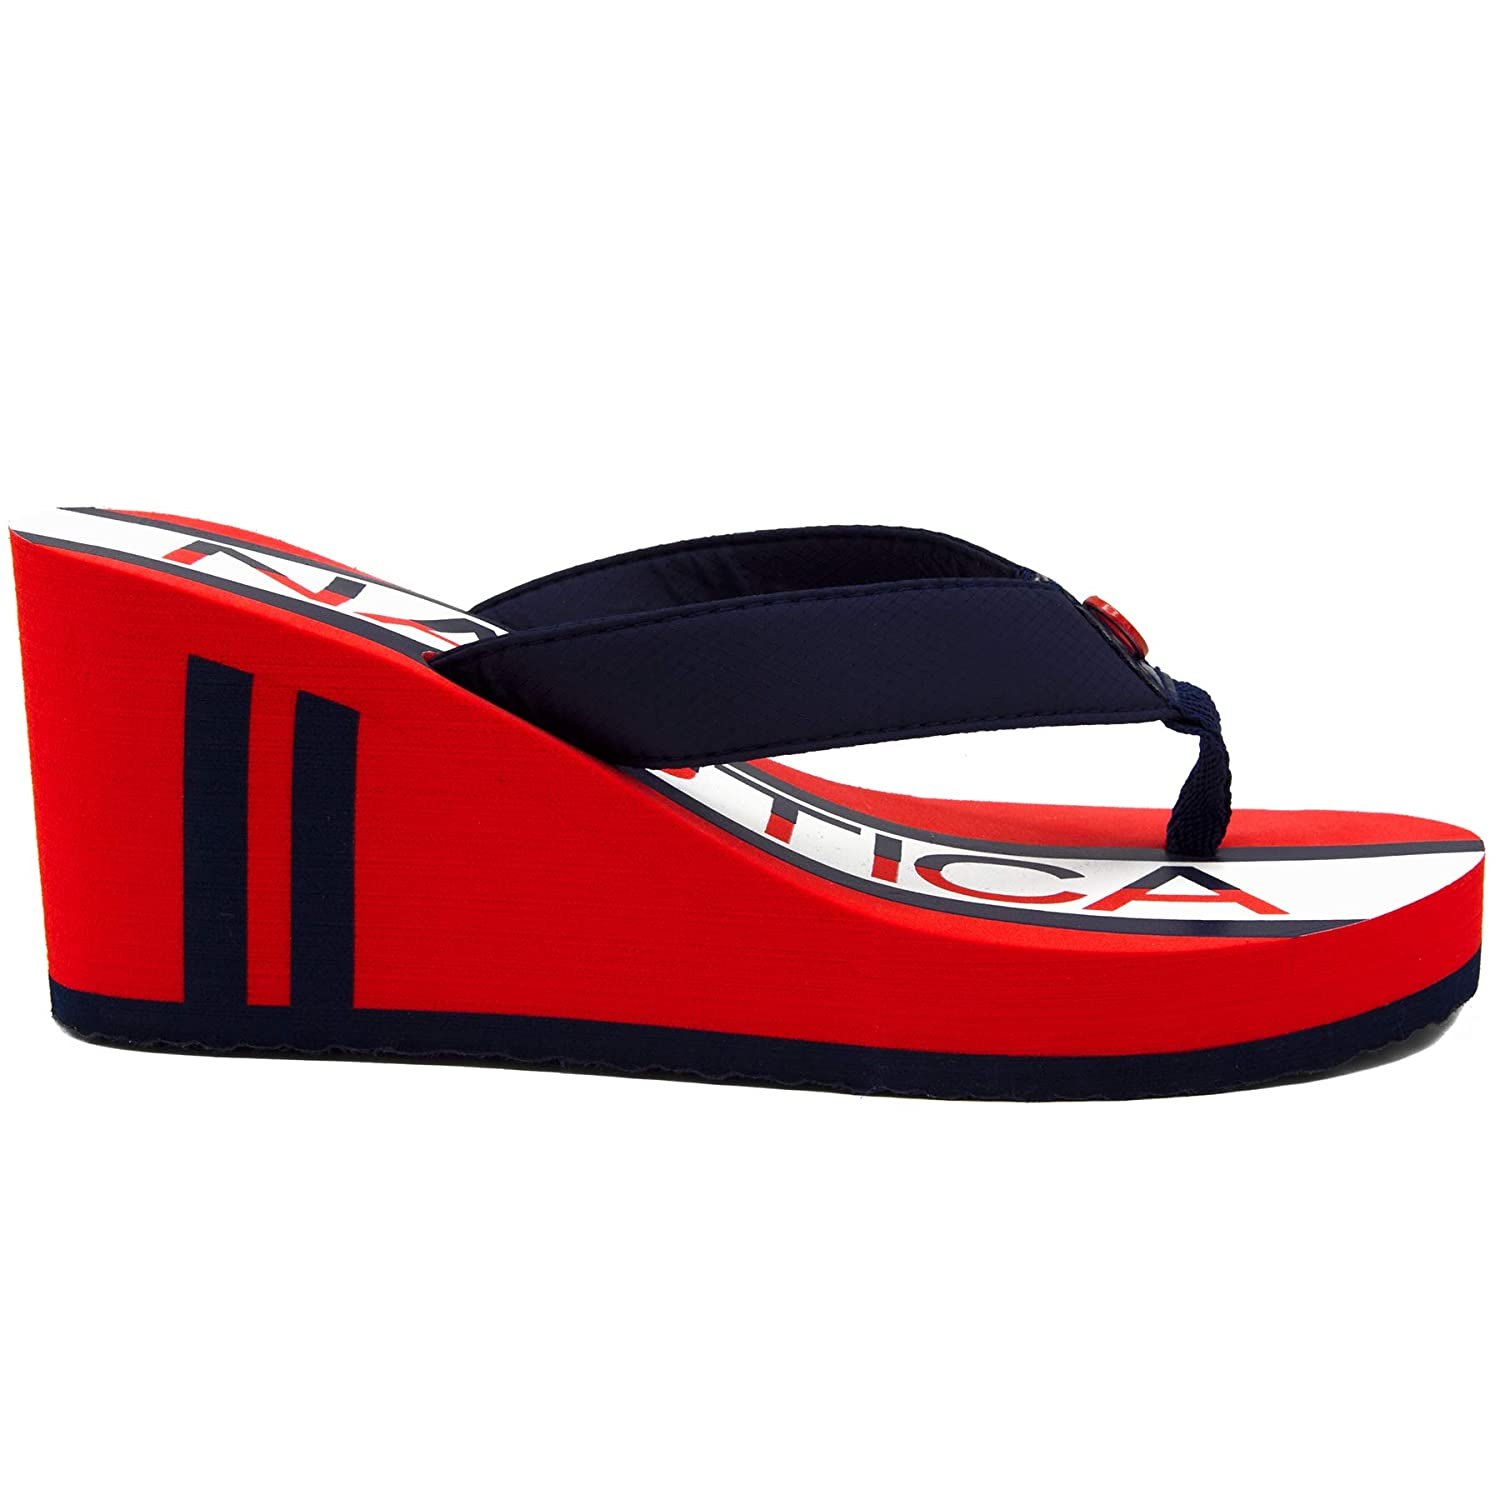 d3693157216c8 Nautica Women's Tedori Wedge Flip Flop, High Fashion Beach Sandal, Thong  Style Slide